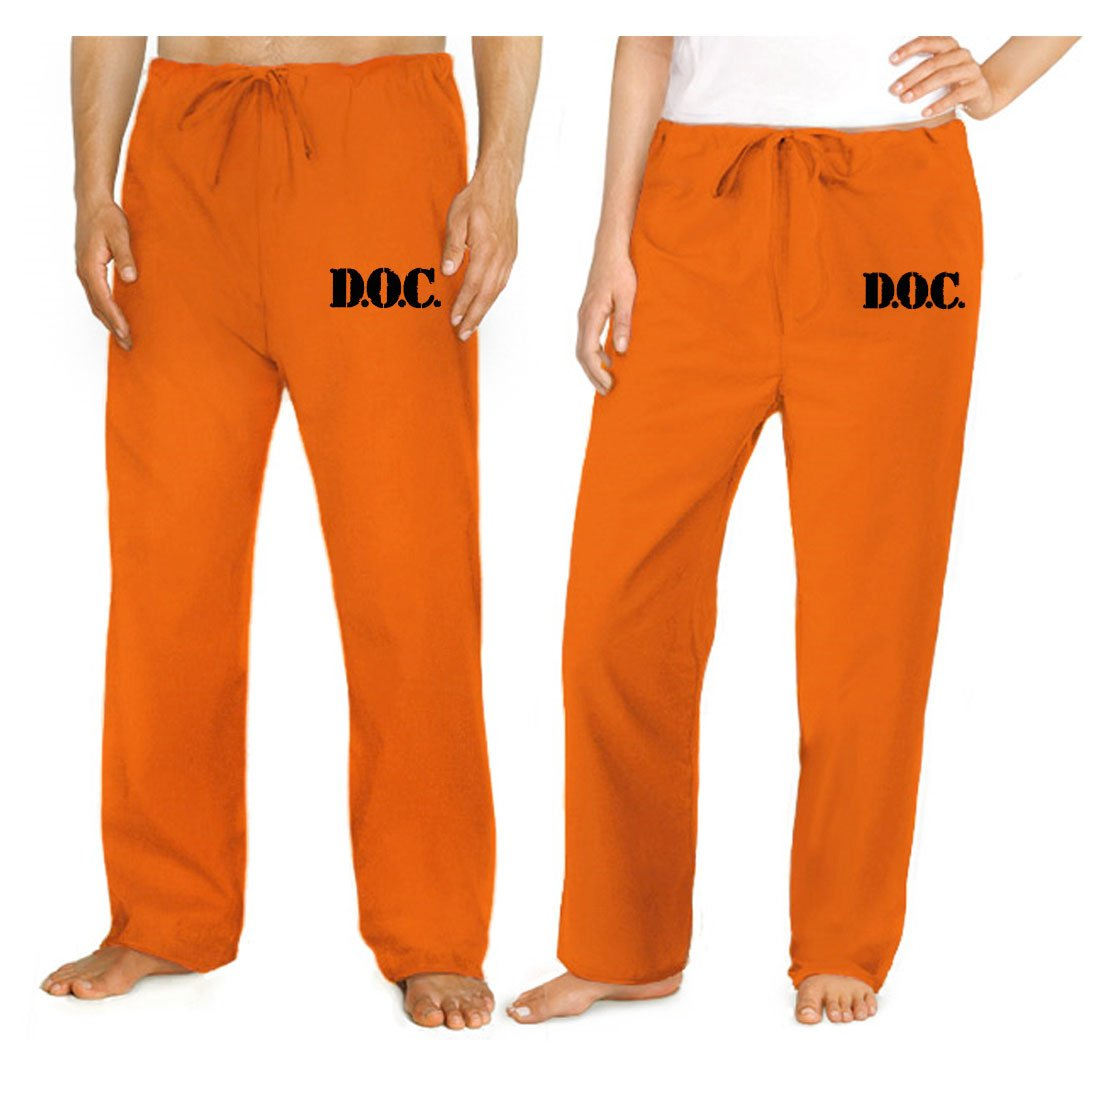 Prison Costume ORANGE DOC Convict Uniform Prisoner Pants